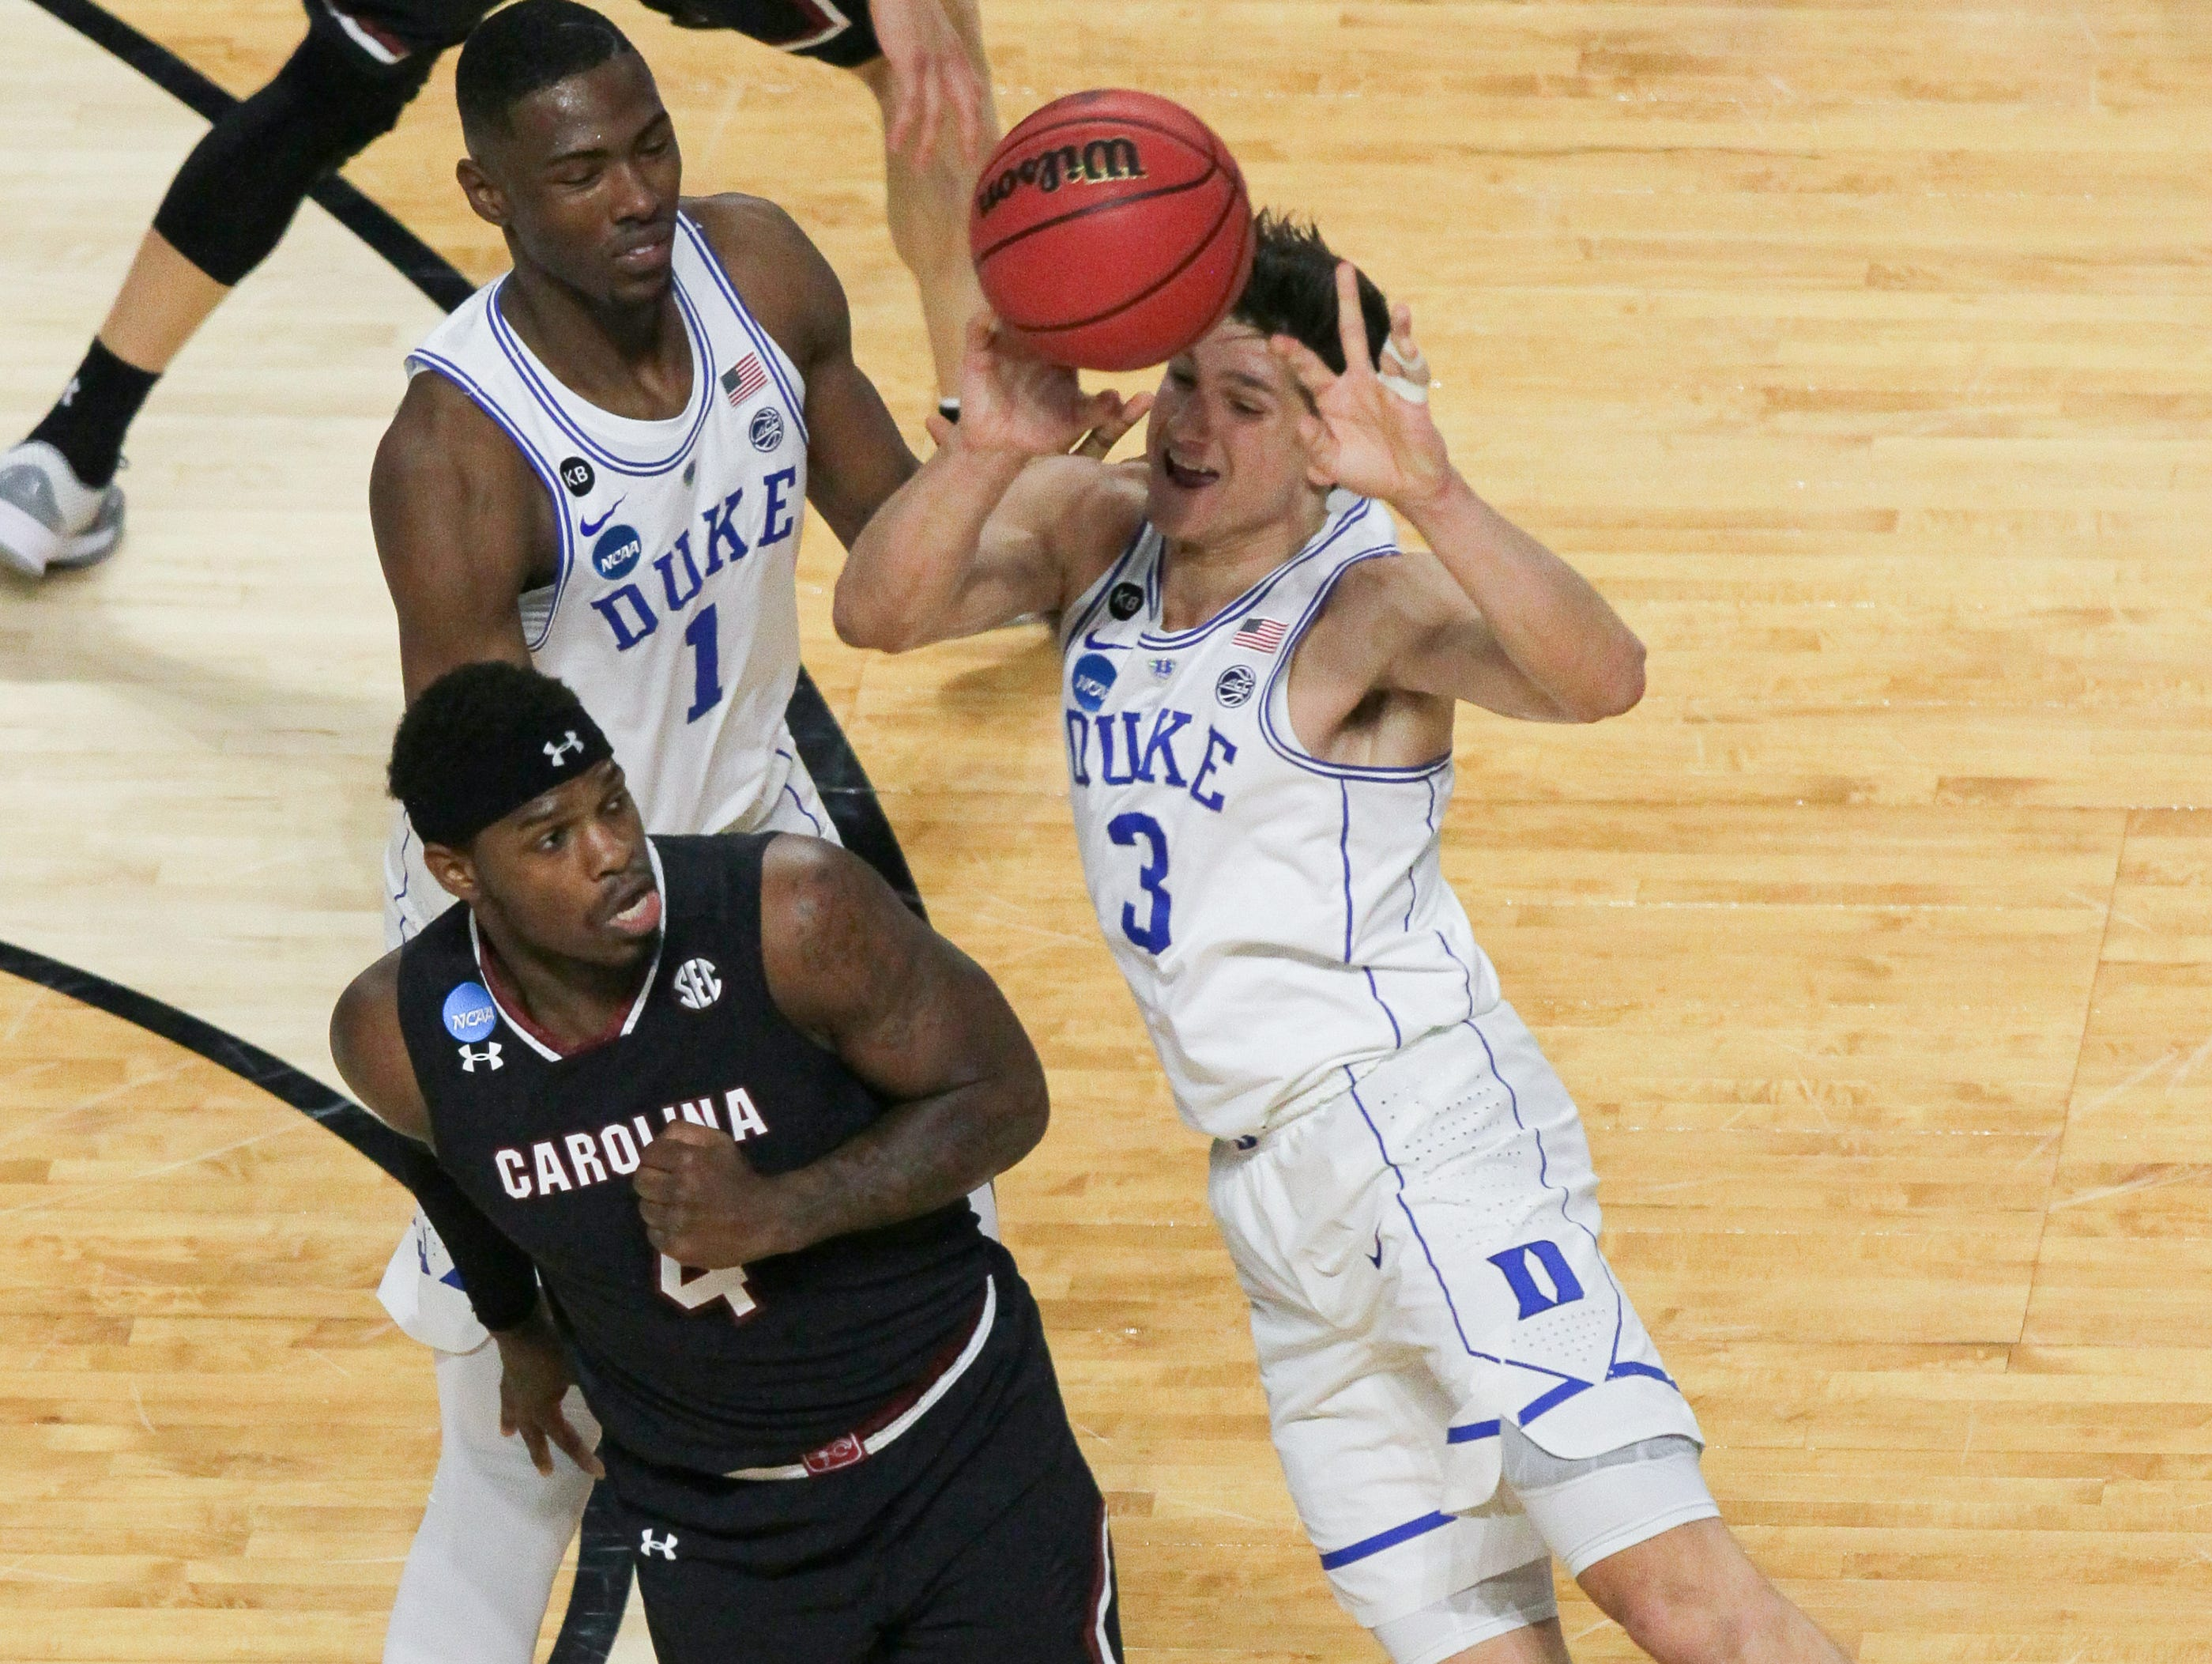 Duke guard Grayson Allen (3) passes near South Carolina guard Rakym Felder (4) in the first half during the 2nd round of the NCAA Tournament at Bon Secours Wellness Arena in downtown Greenville on Sunday, March 19, 2017.